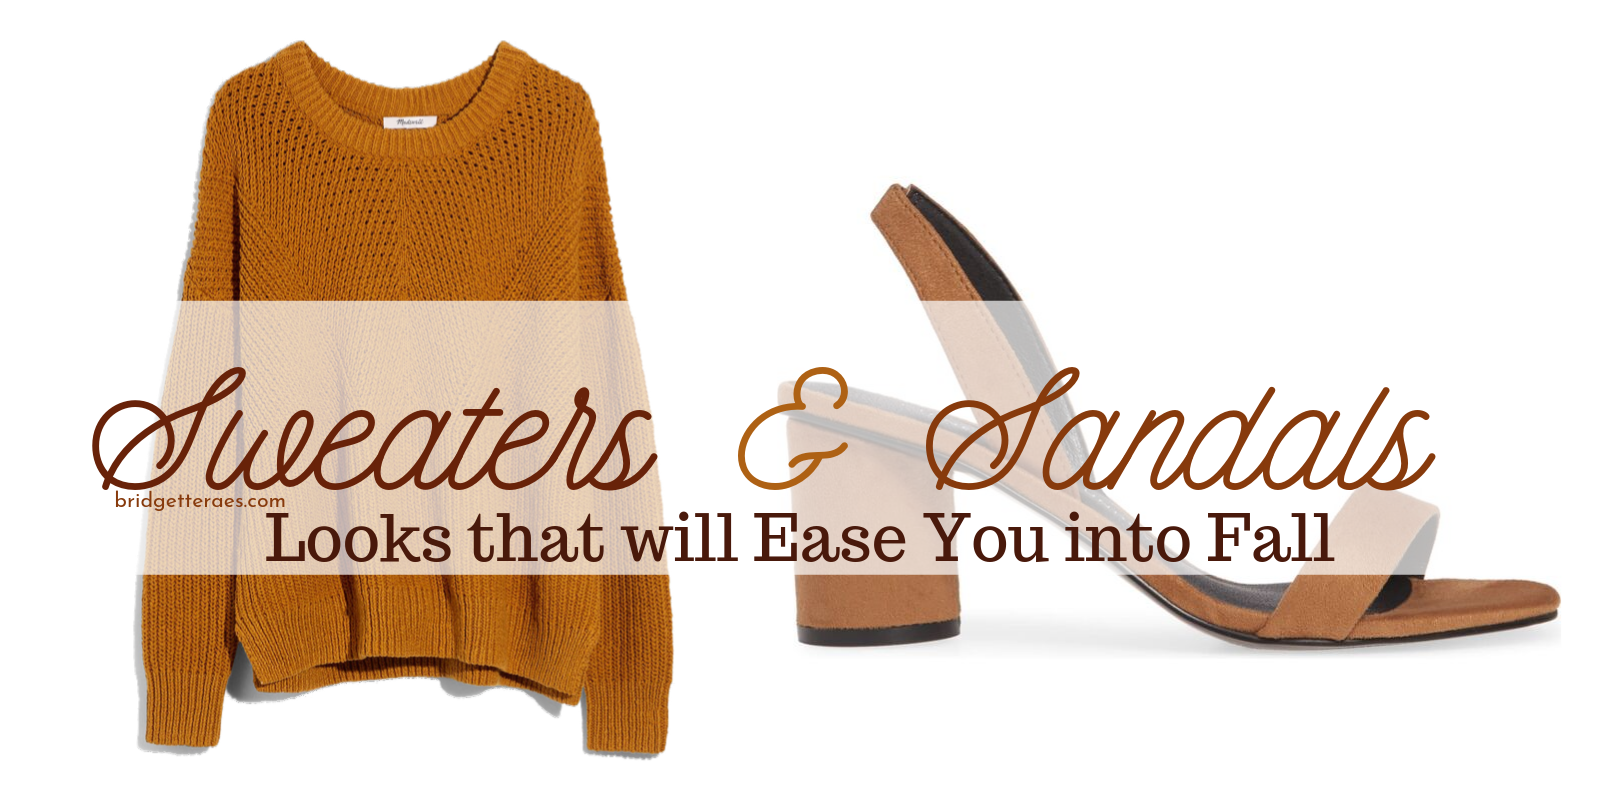 Sweaters and Sandals: Looks that will Ease You into Fall